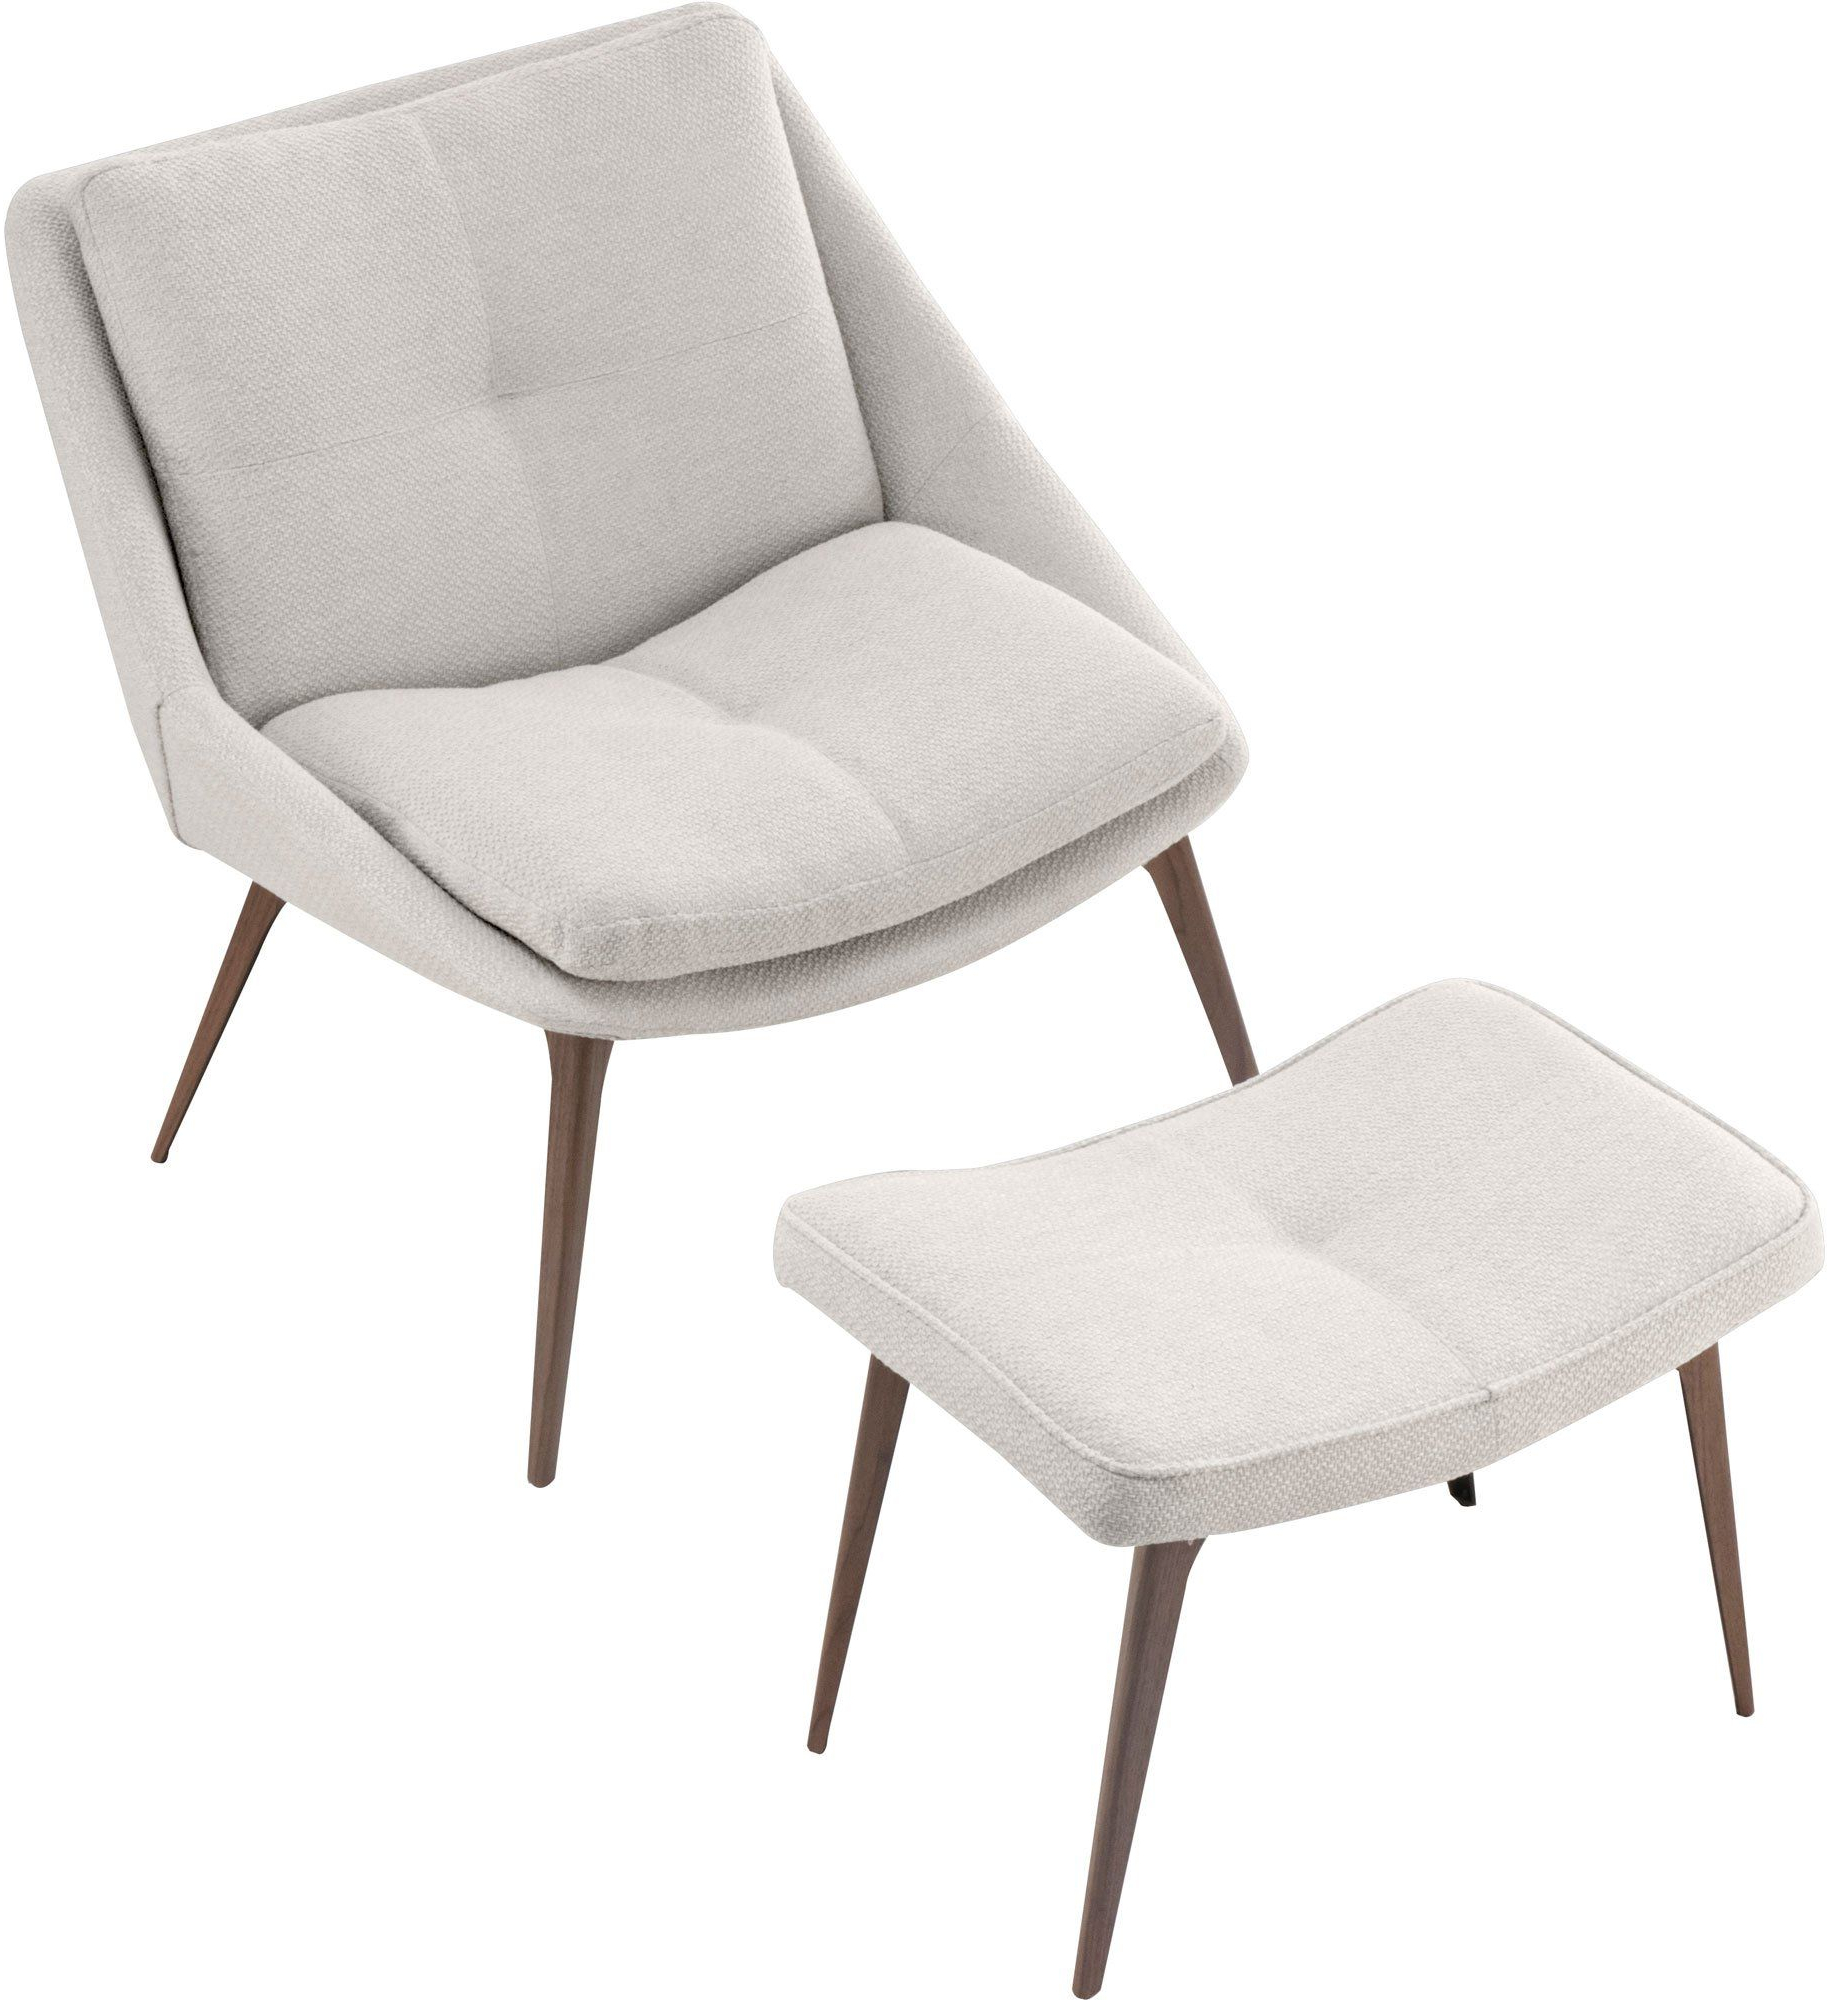 Popular Columbus Lounge Chair And Ottoman In Birch Fabric — France Throughout Columbus Armchairs (View 14 of 20)